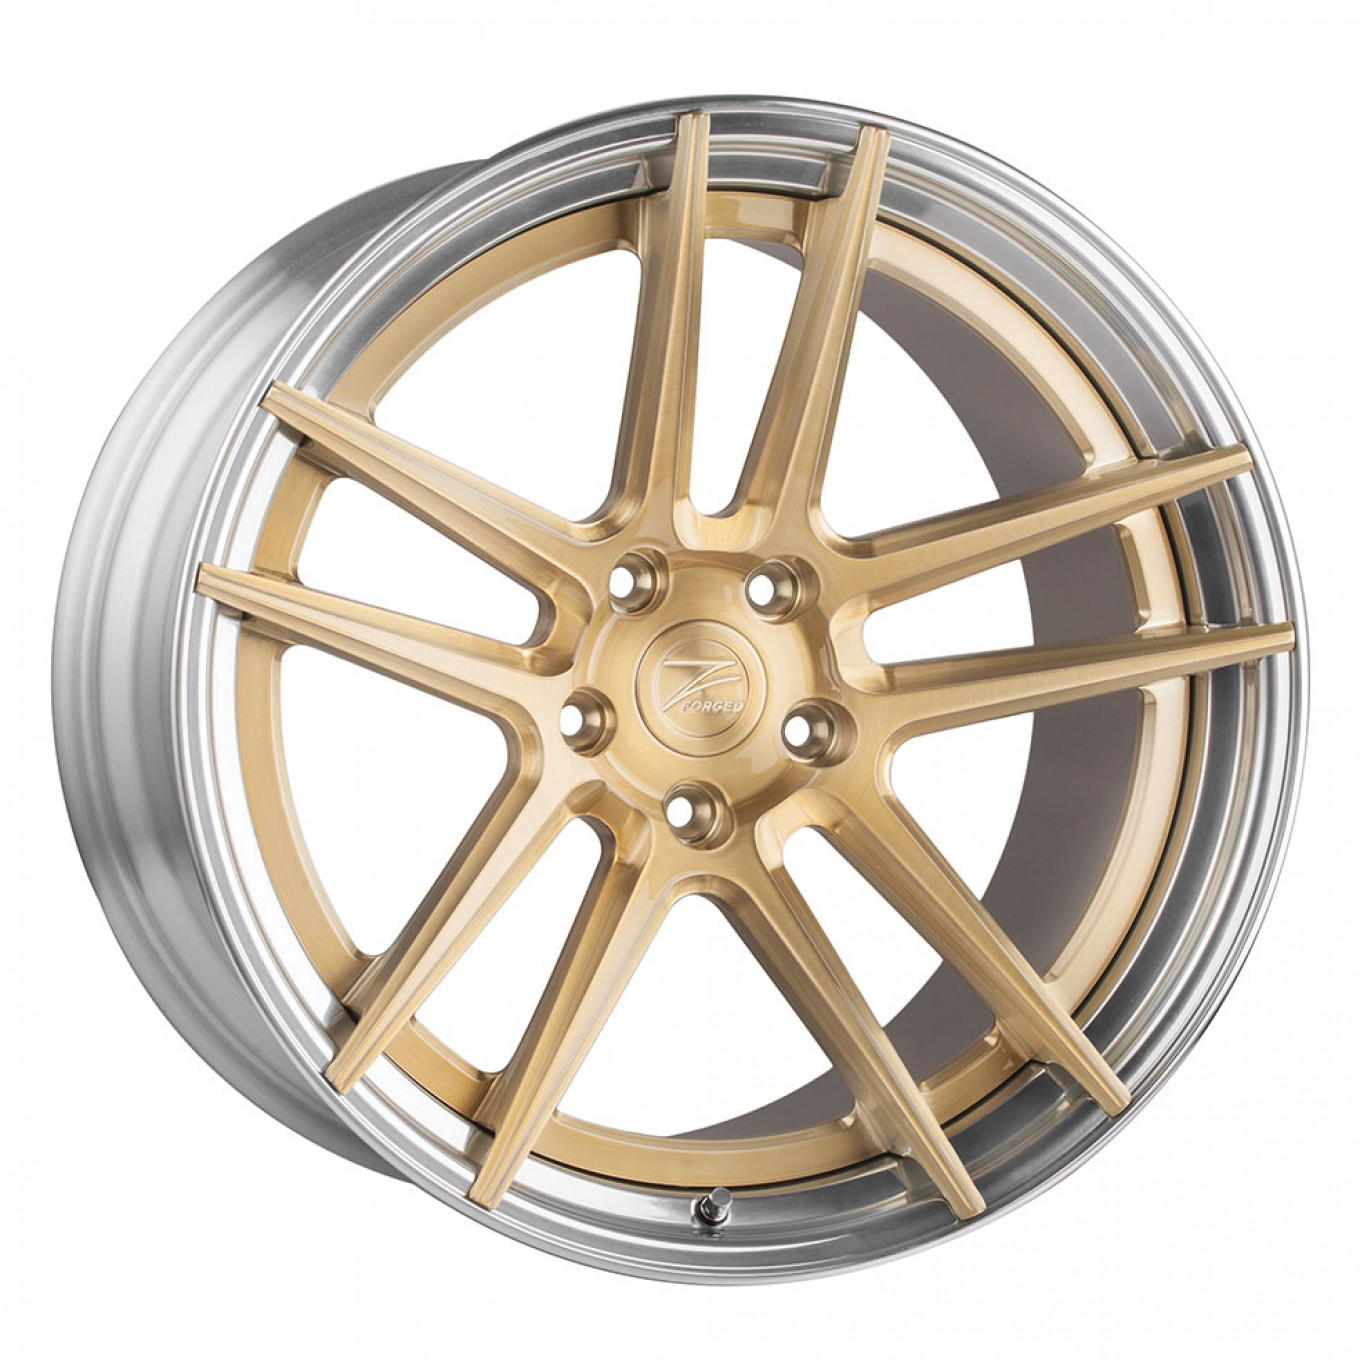 ZP.FORGED 2 Super Deep Concave | ROYAL GOLD / Polished Lip